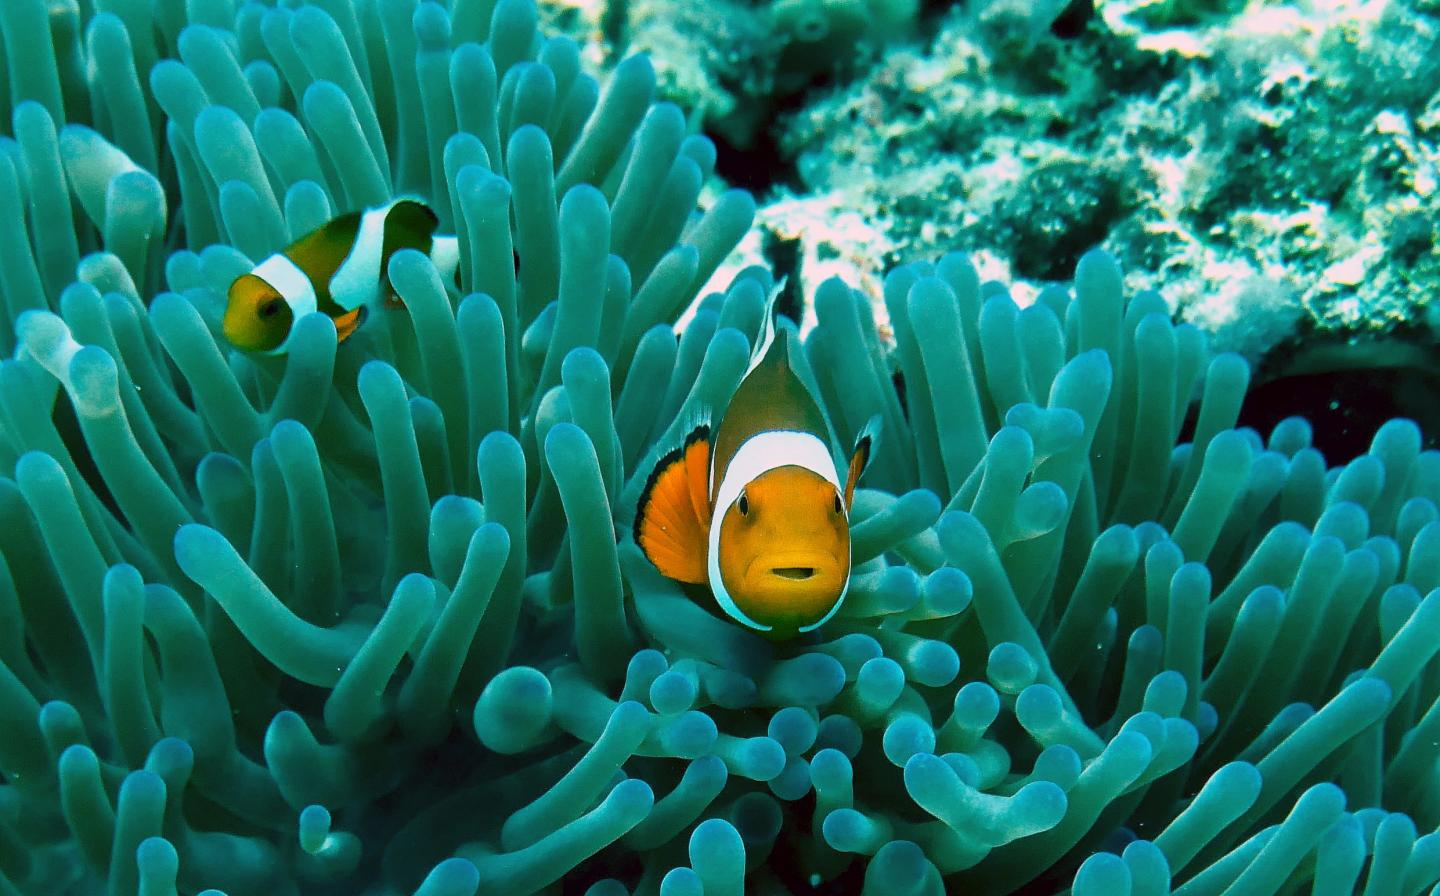 Clownfishes live in symbiosis with sea anemones